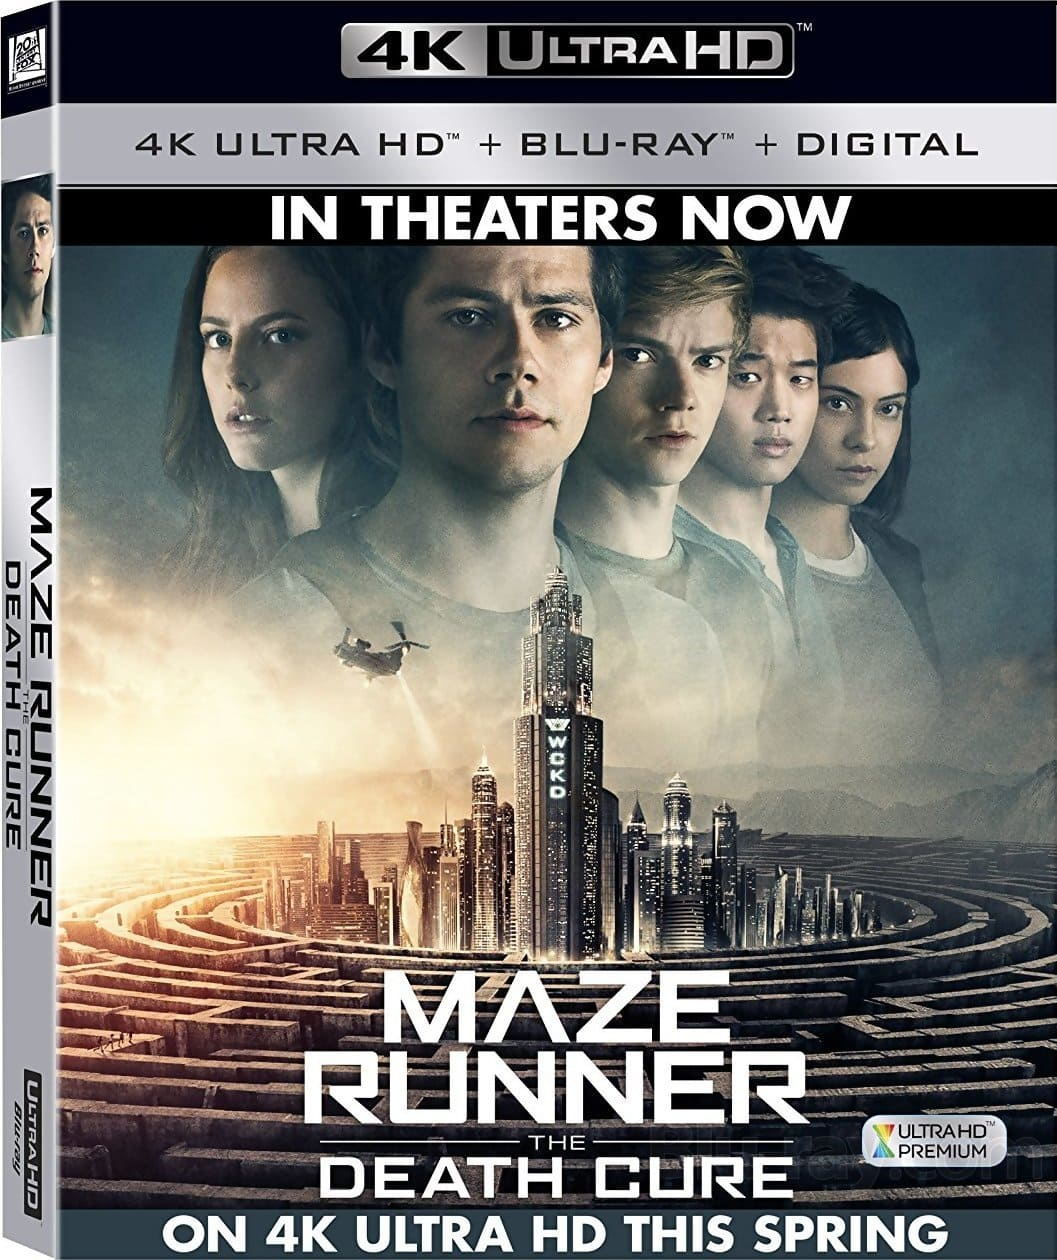 Maze Runner The Death Cure 4K 2018 HDR